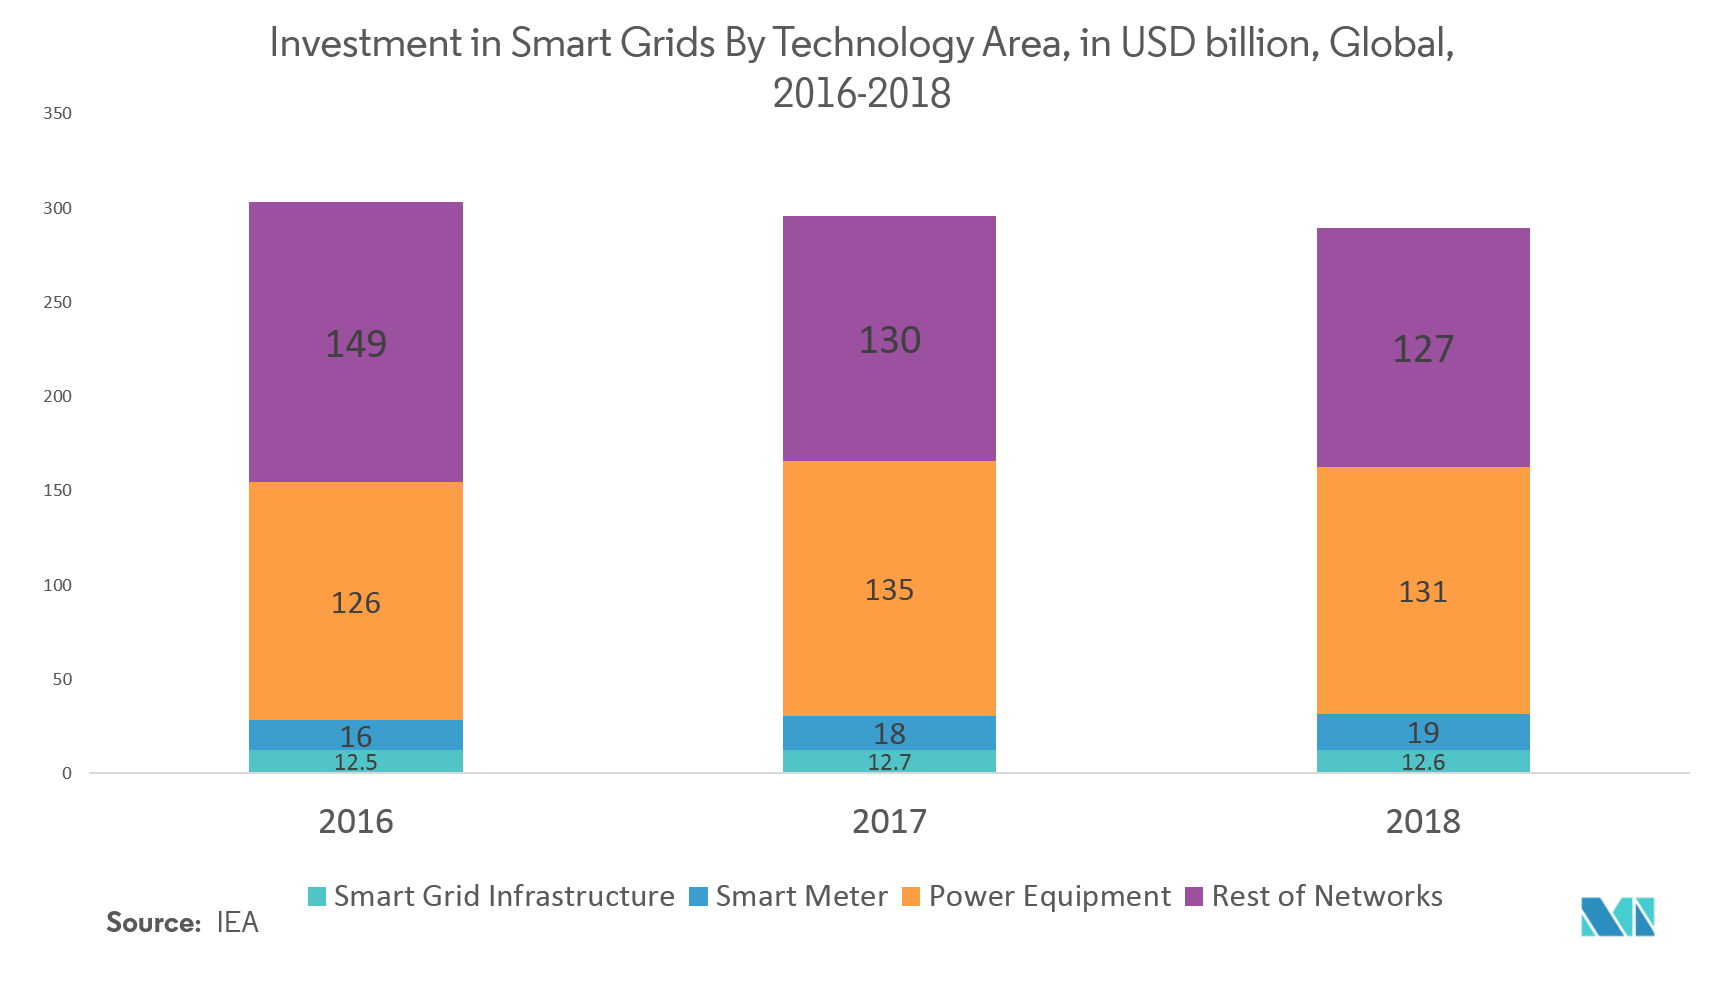 Investment in Smart Grids By Technology Area